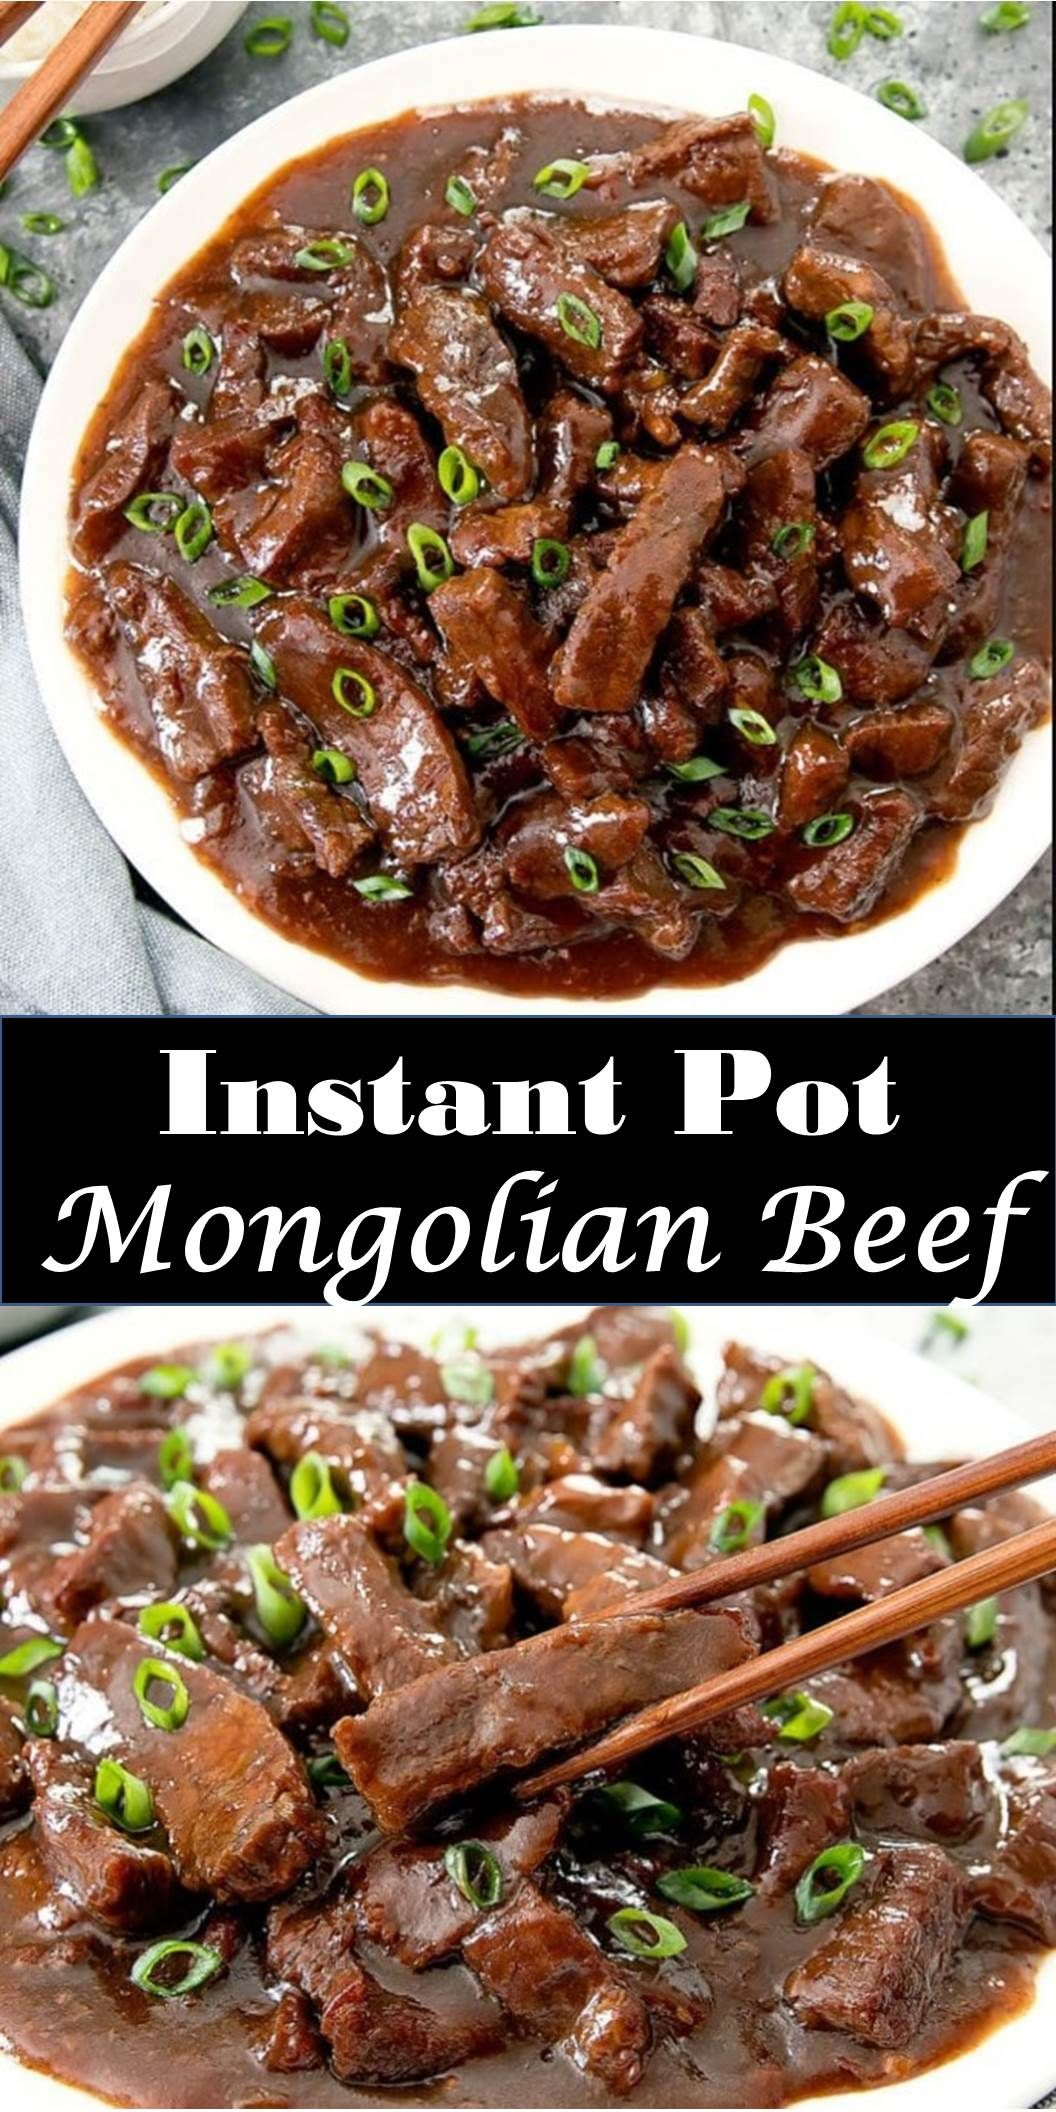 A Pan Full Of Mongolian Beef With Green Onions With Images